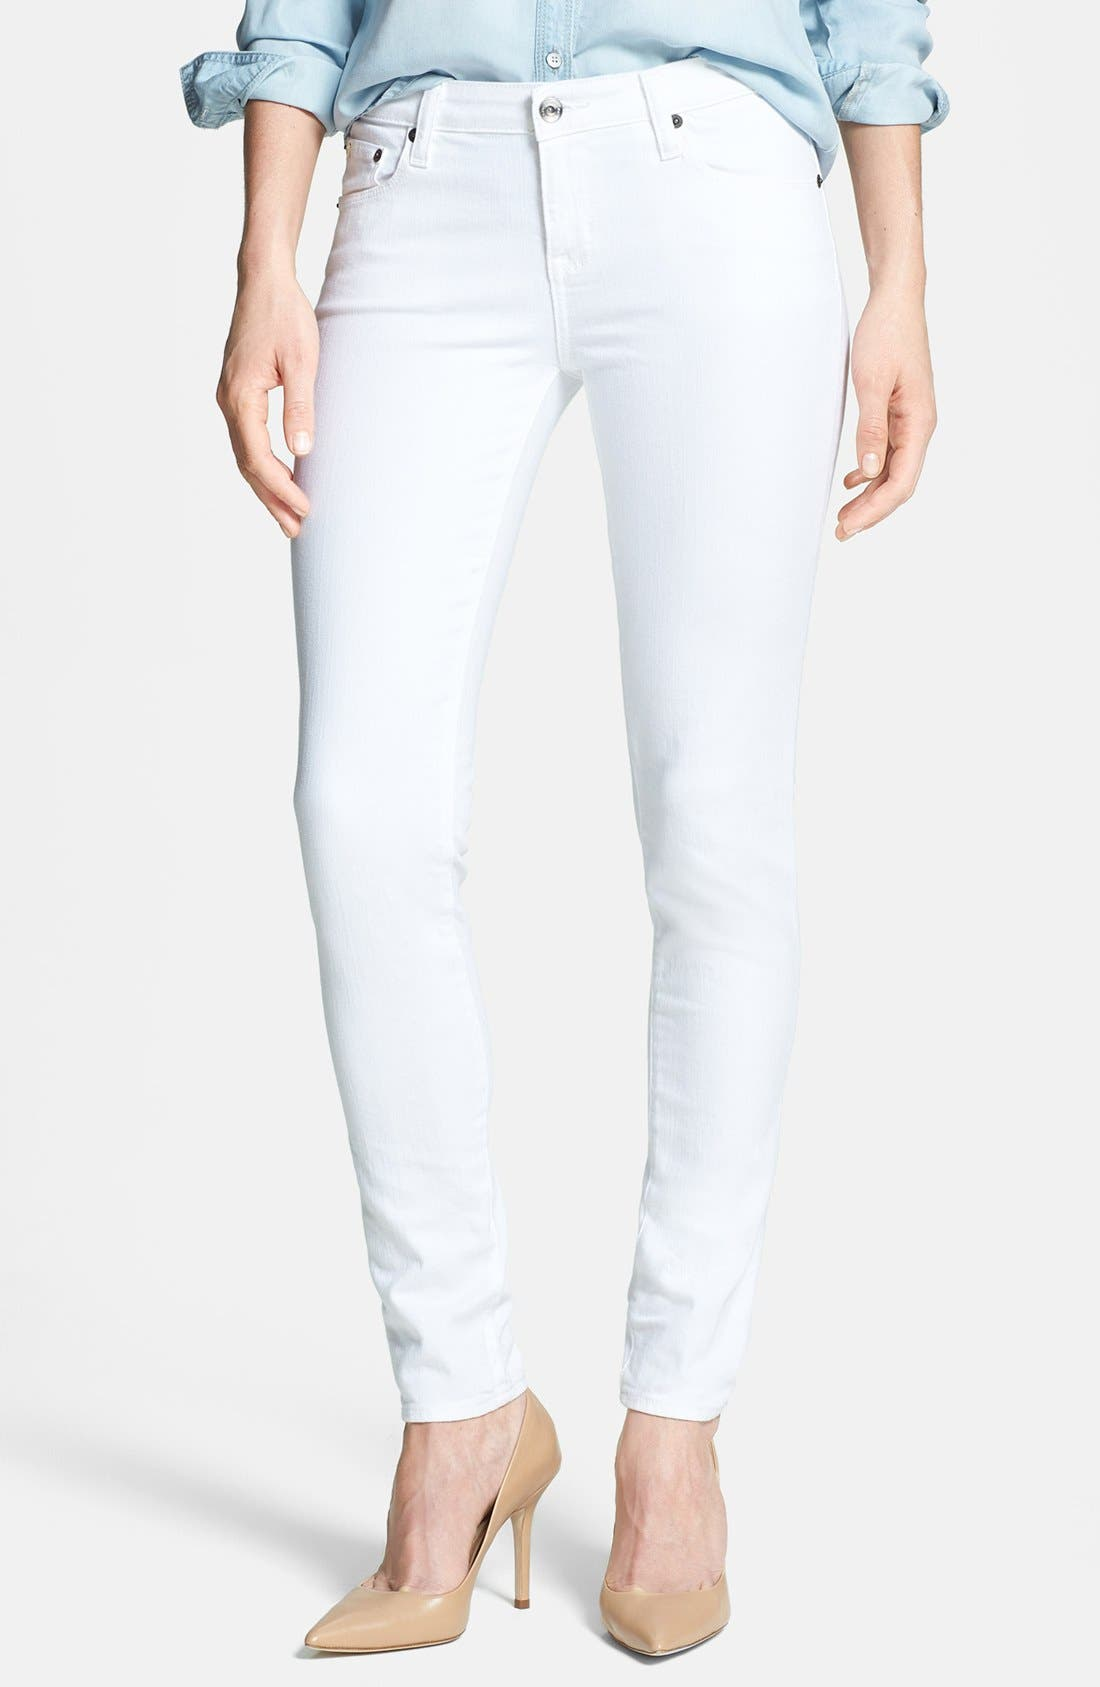 Alternate Image 1 Selected - Big Star 'Alex' Stretch Skinny Jeans (White)